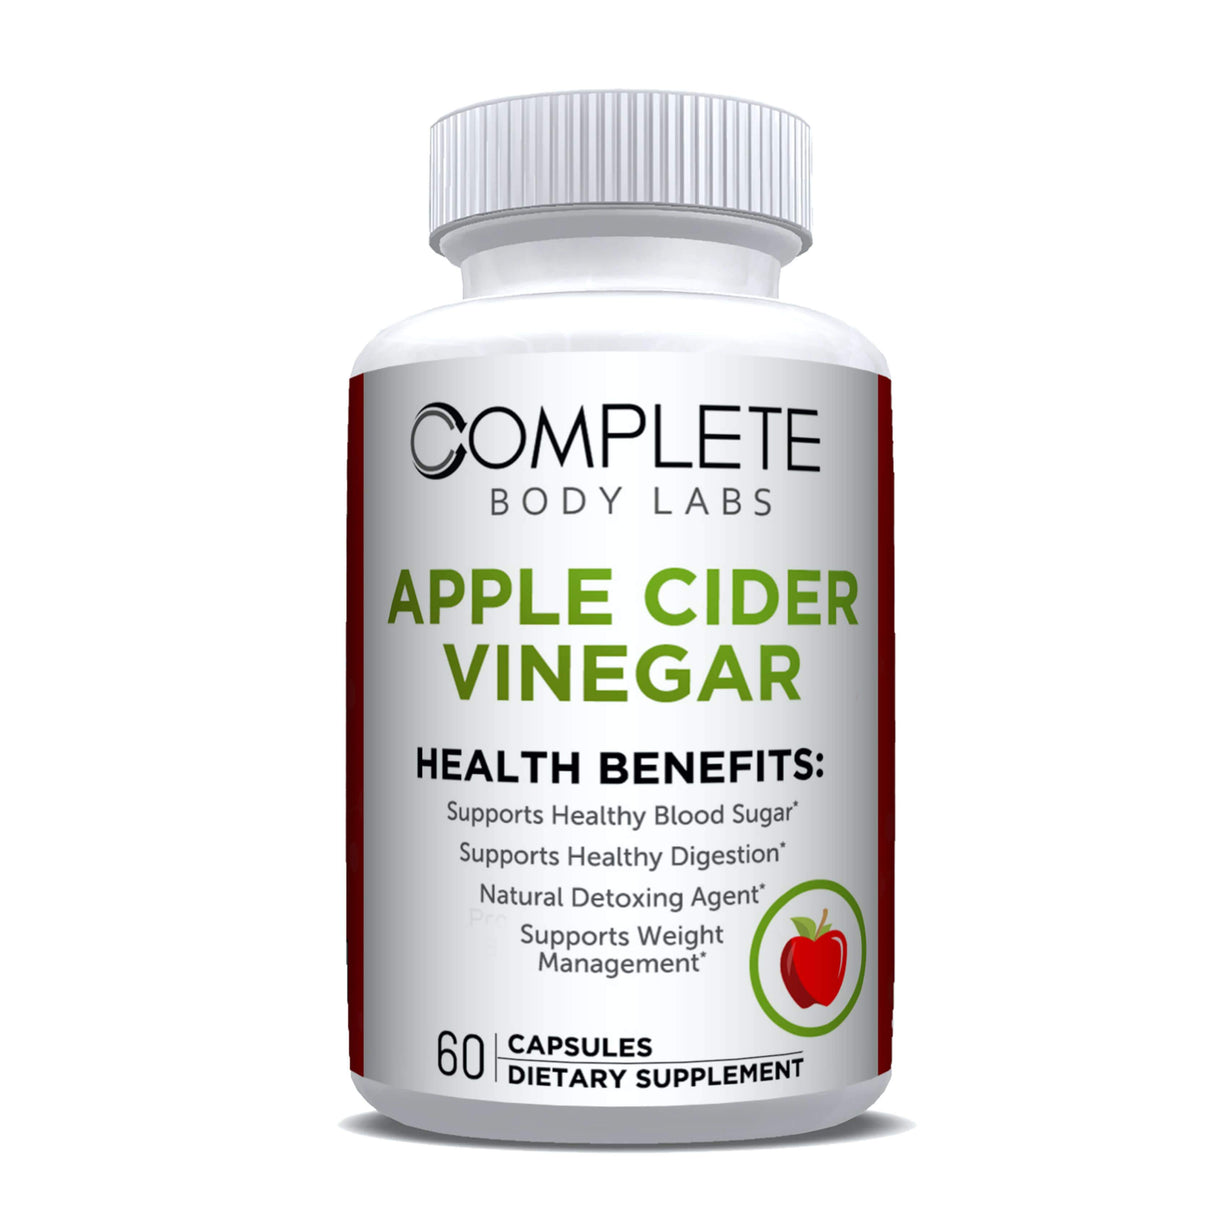 APPLE CIDER VINEGAR | Complete Body Labs | Probiotics, Nootropics, Brain Supplements, Protein Bars, Workout Supplements, Health Supplements, Omega-3 & Essential Vitamins For Men & Women